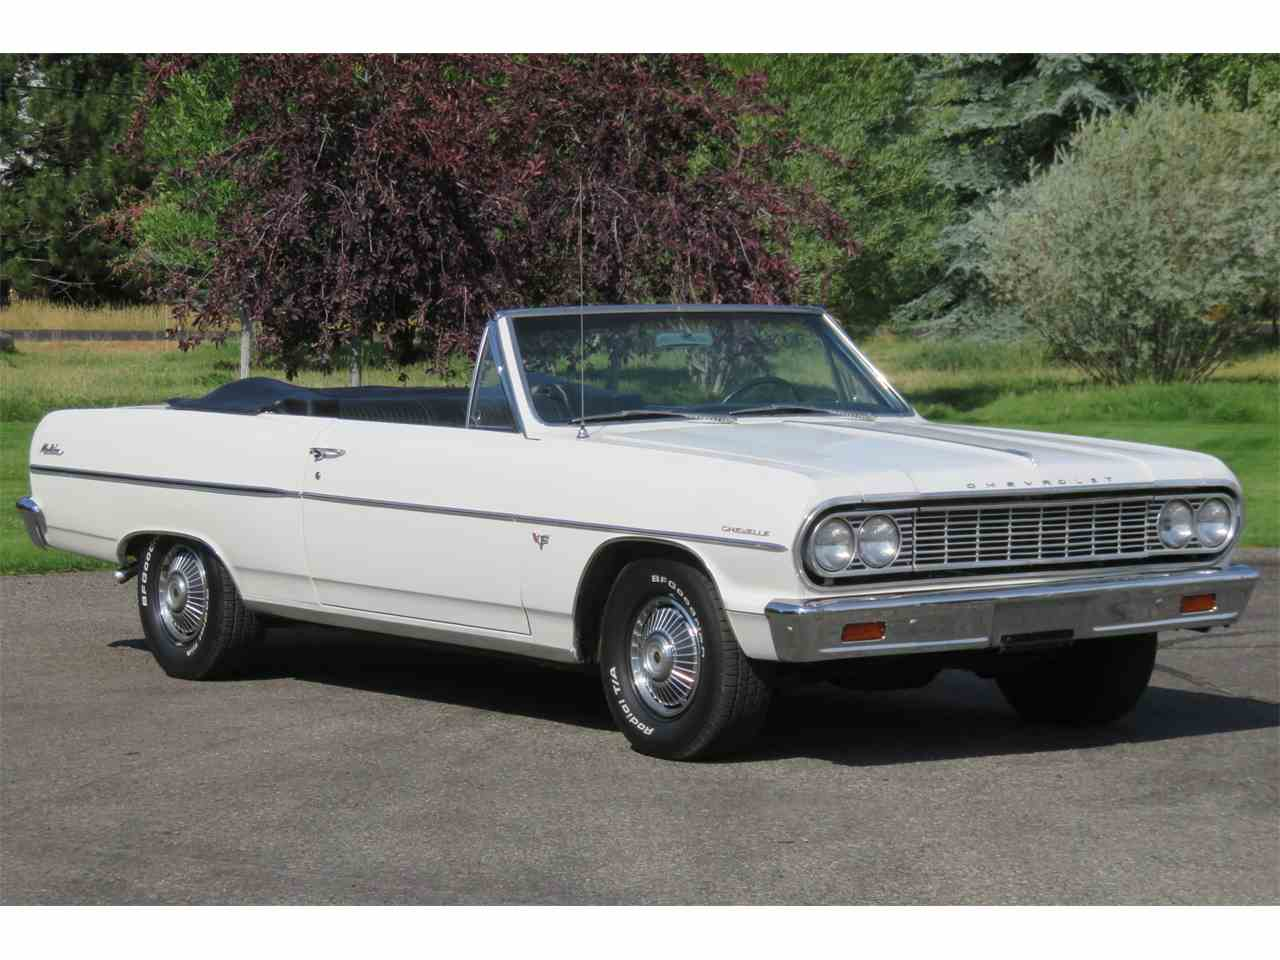 1964 Chevrolet Chevelle Malibu for Sale - CC-1021768